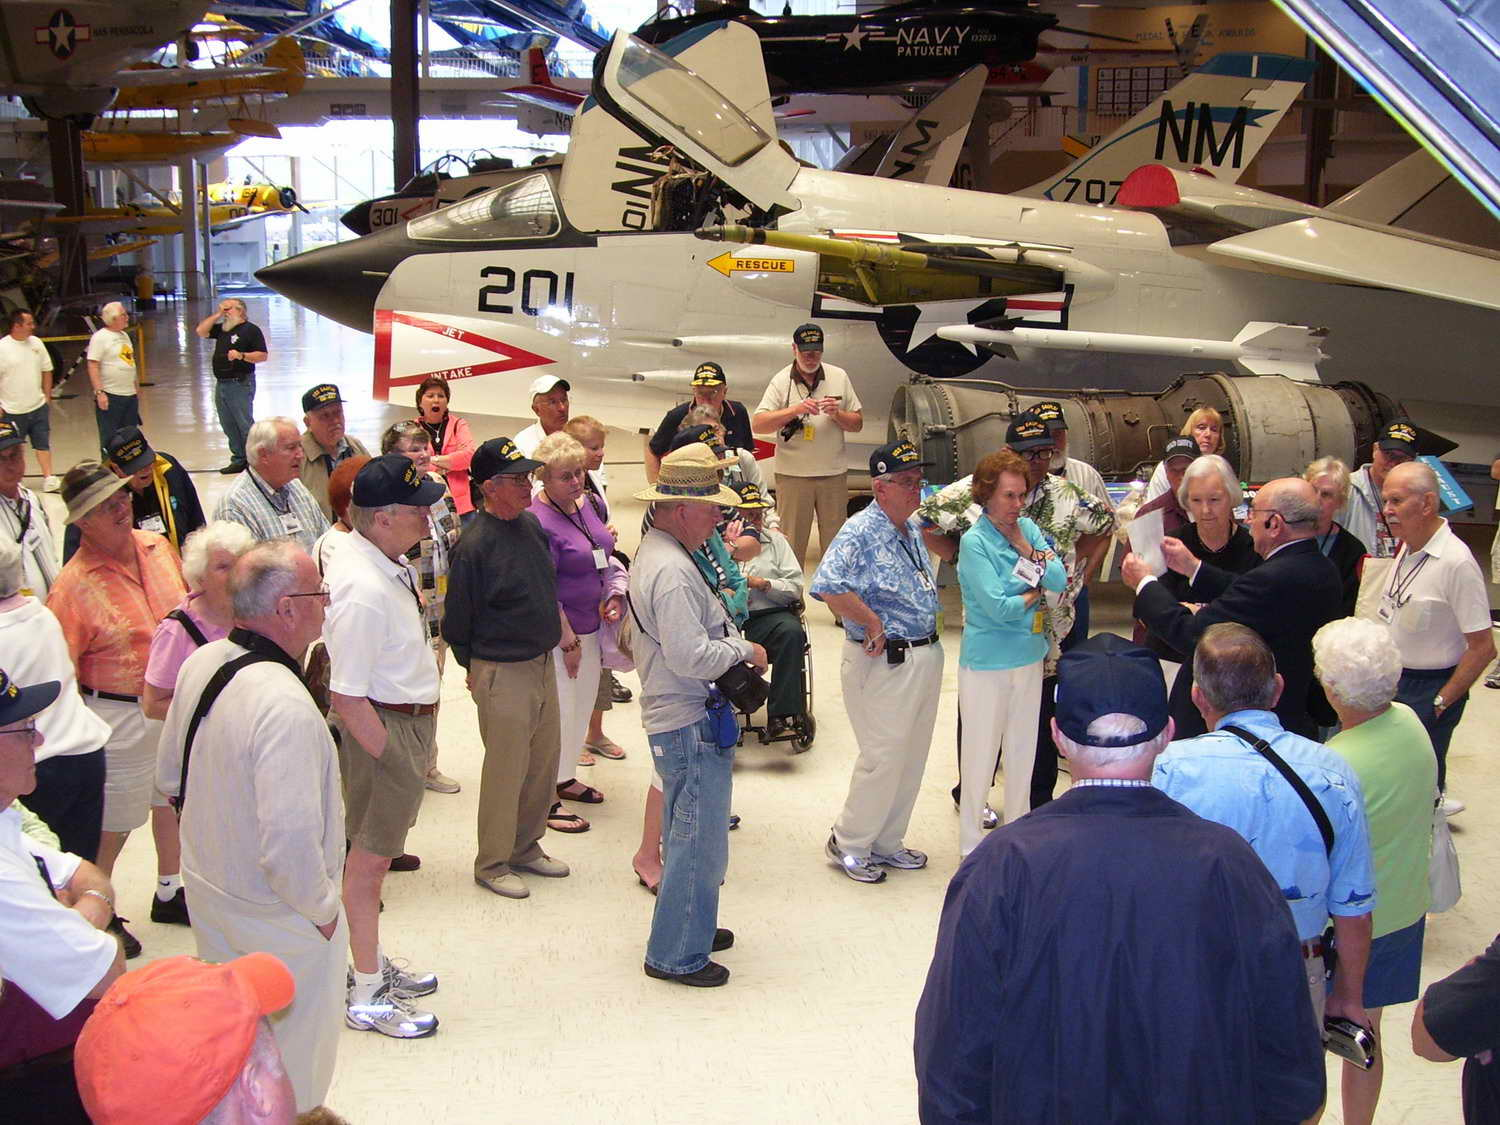 Touring the National Naval Aviation Museum